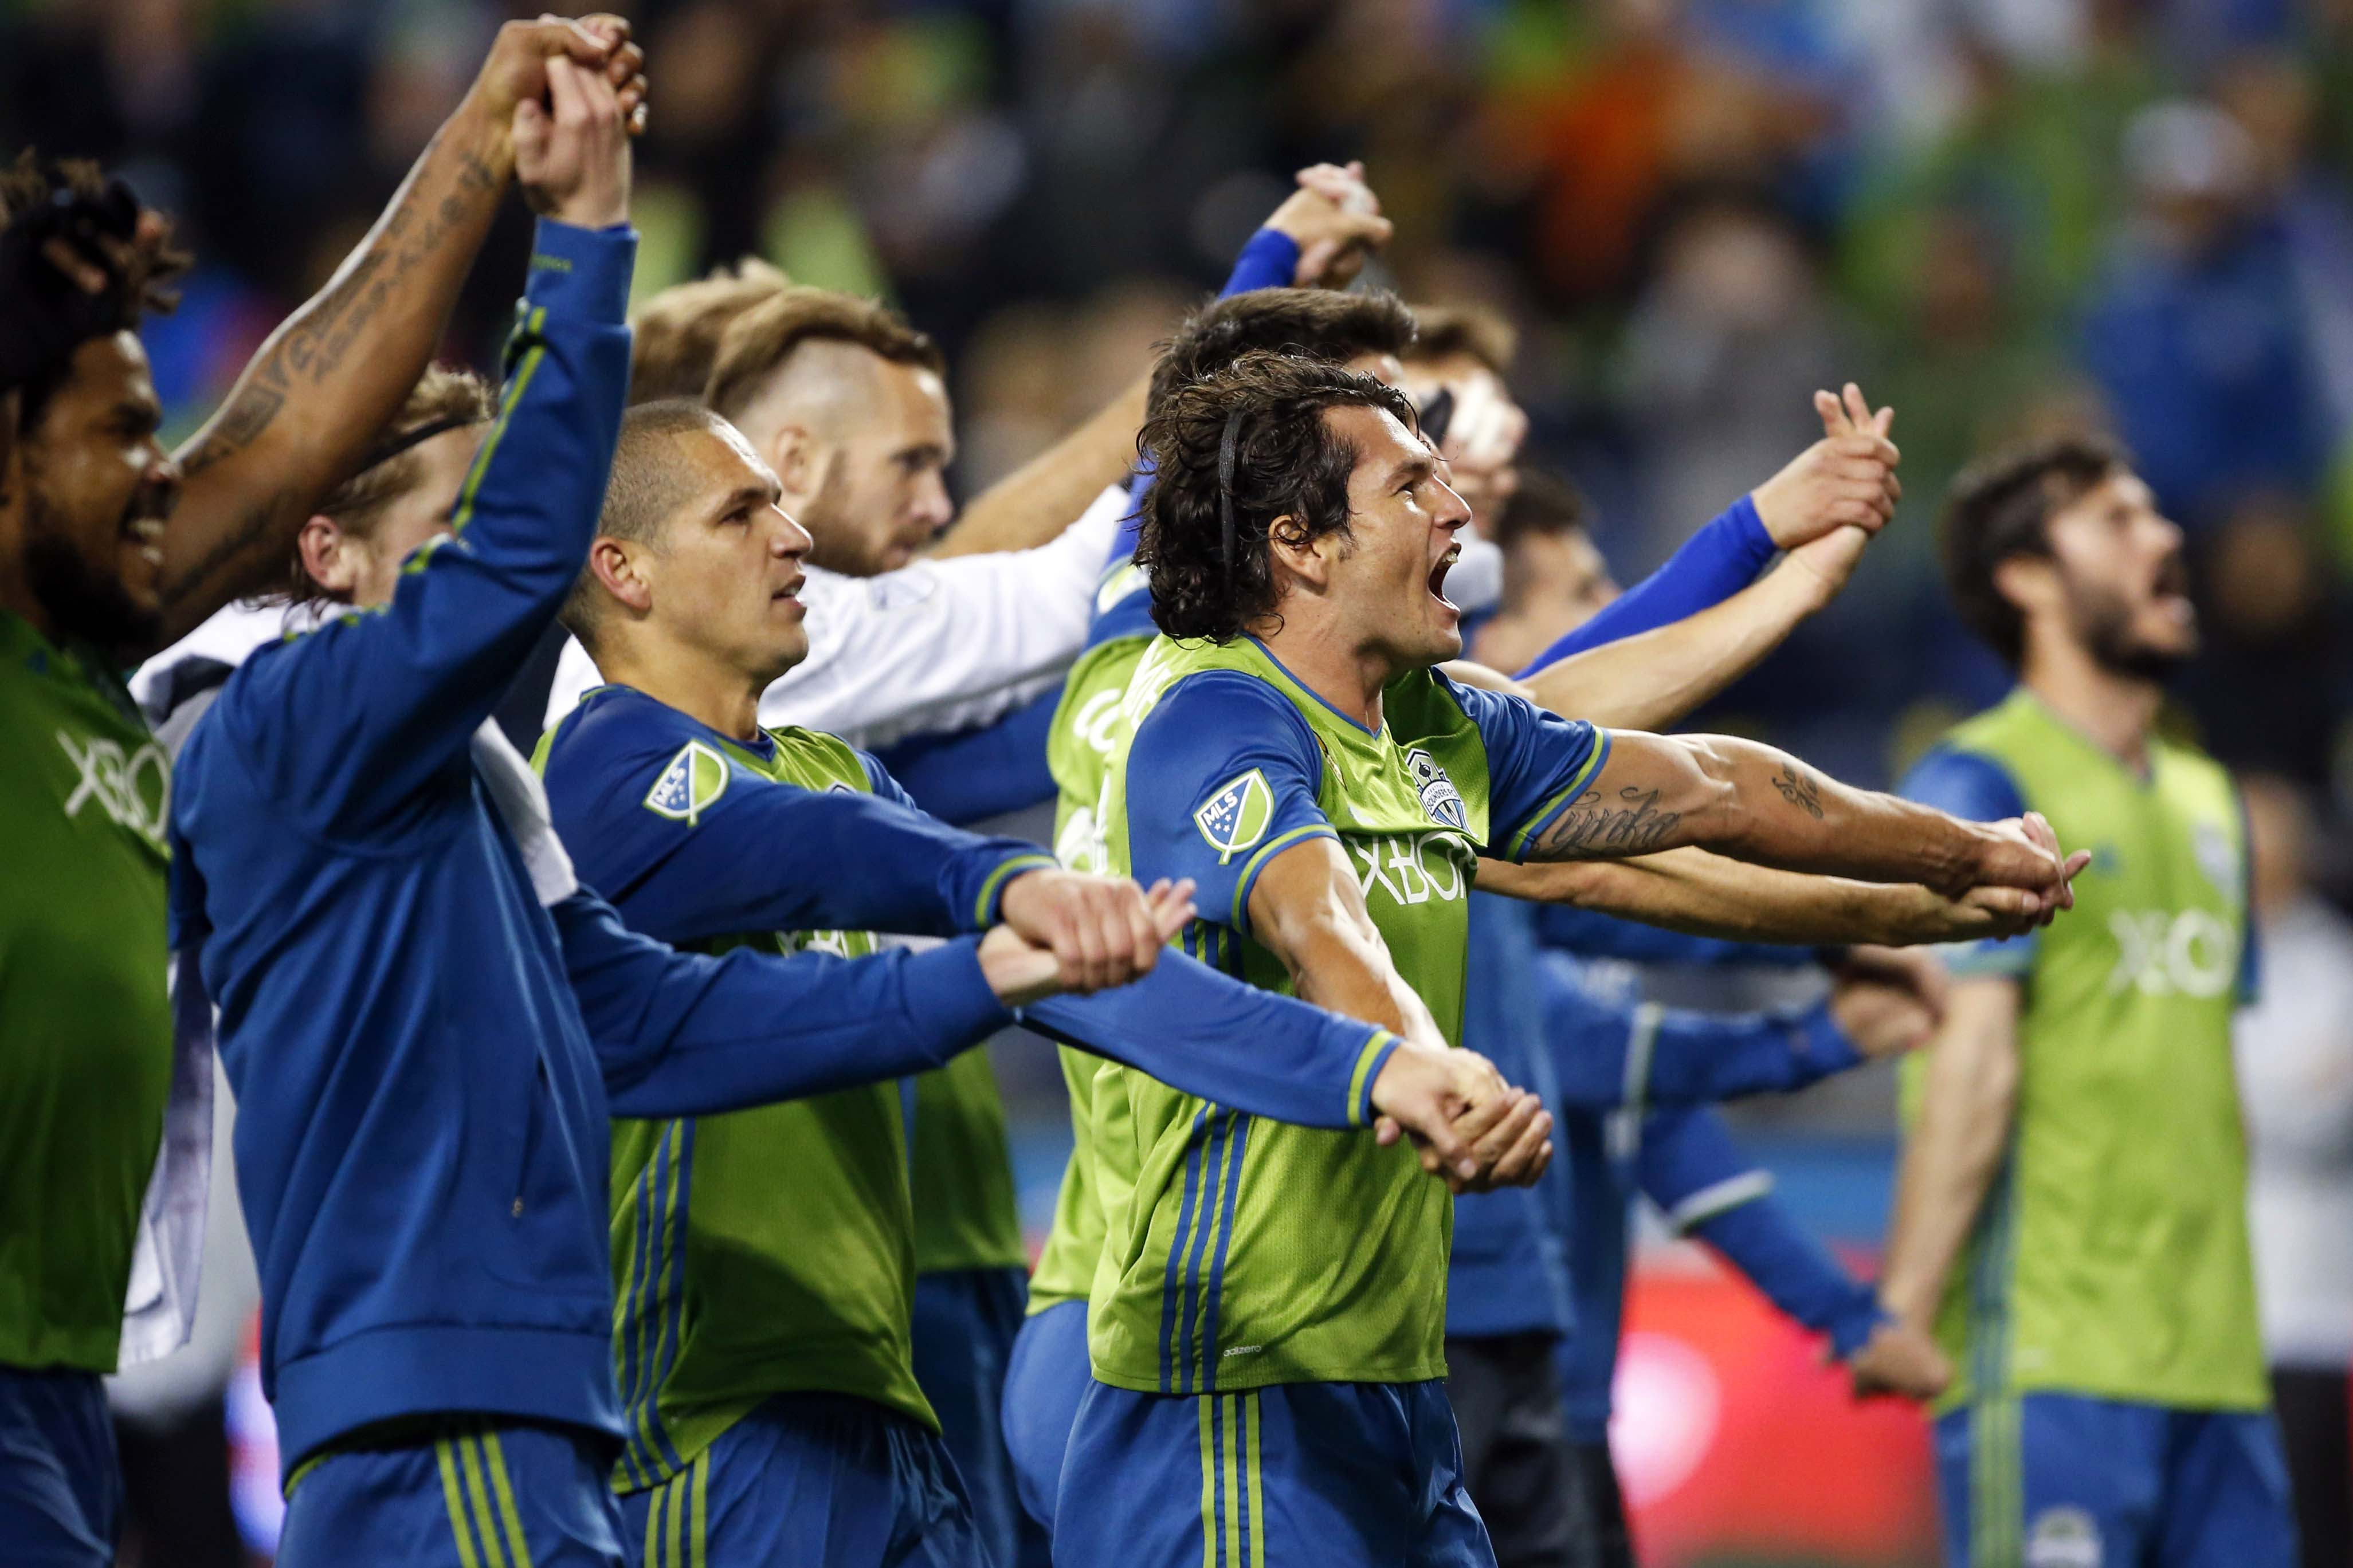 Oct 27, 2016; Seattle, WA, USA; Seattle Sounders FC forward Nelson Valdez (16) celebrates with his teammates after a 1-0 victory against Sporting Kansas City at CenturyLink Center. Mandatory Credit: Jennifer Buchanan-USA TODAY Sports